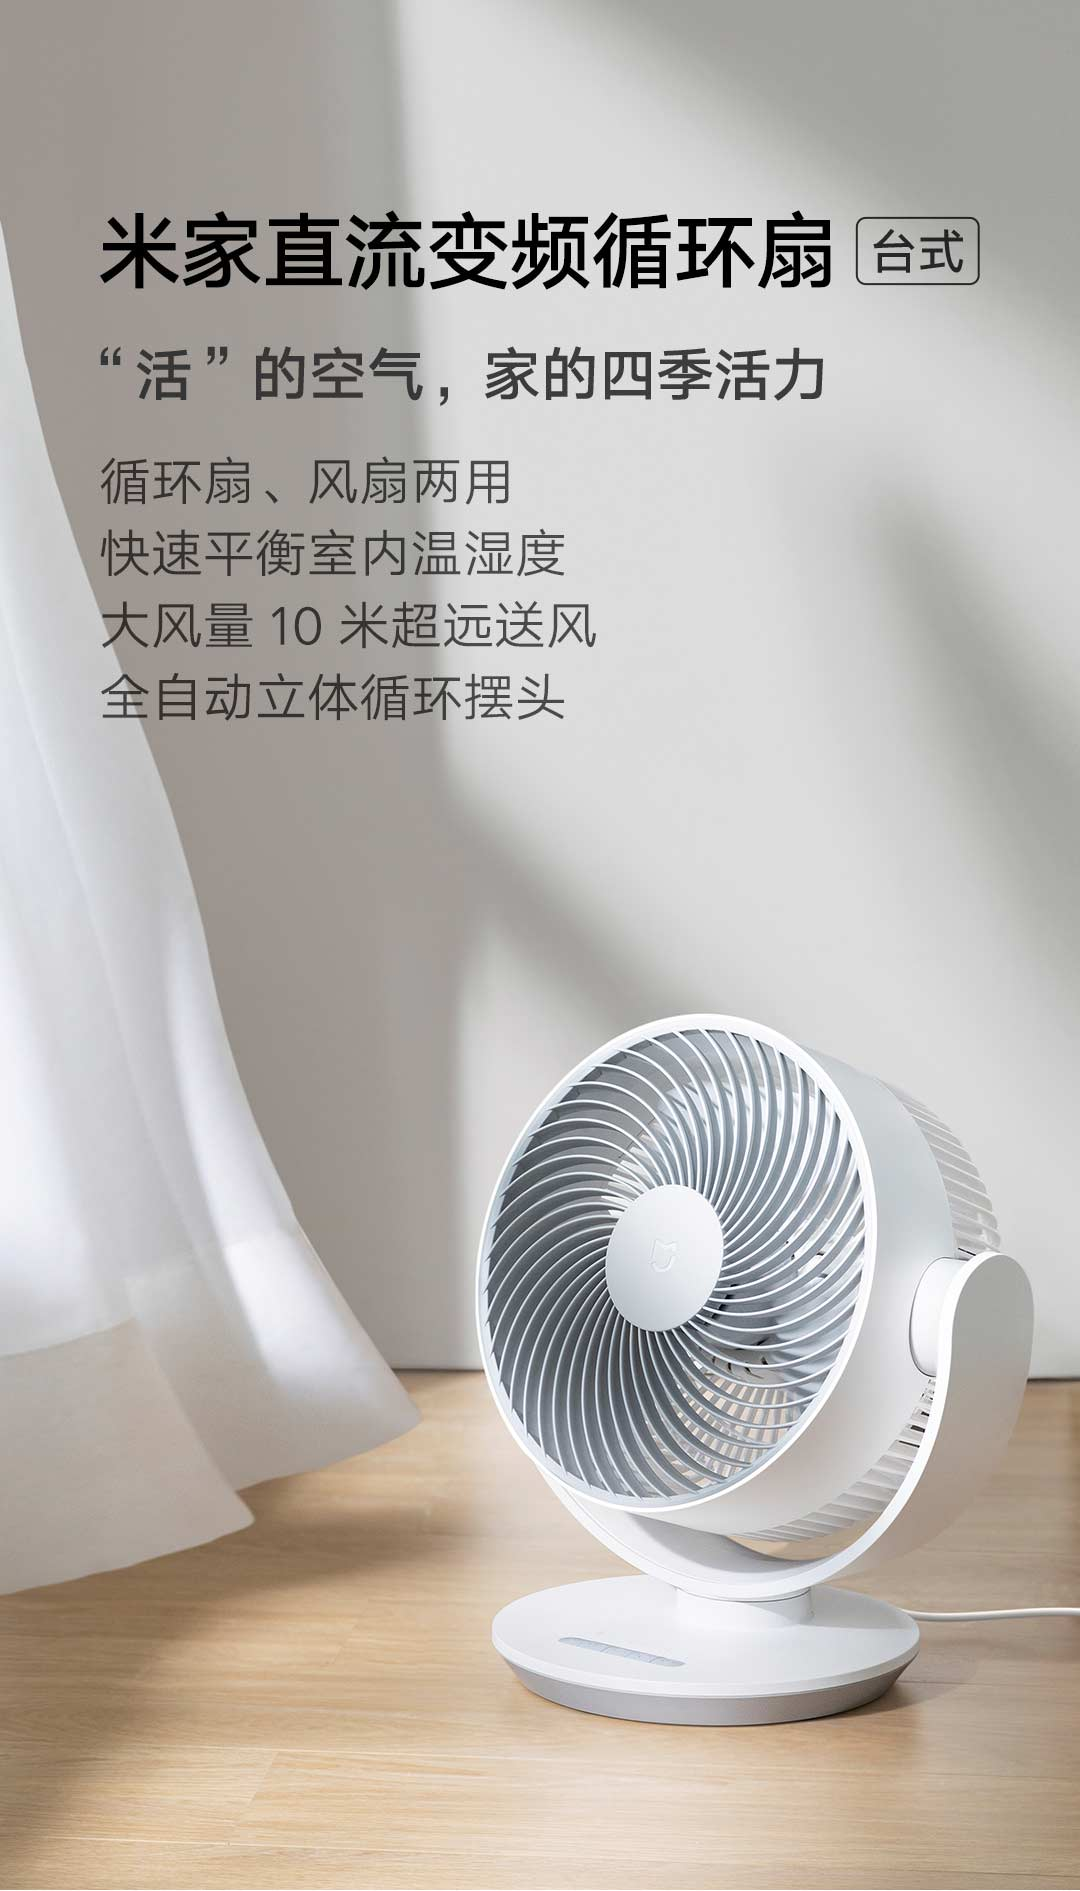 Xiaomi Mijia fan, Xiaomi's first air circulating fan